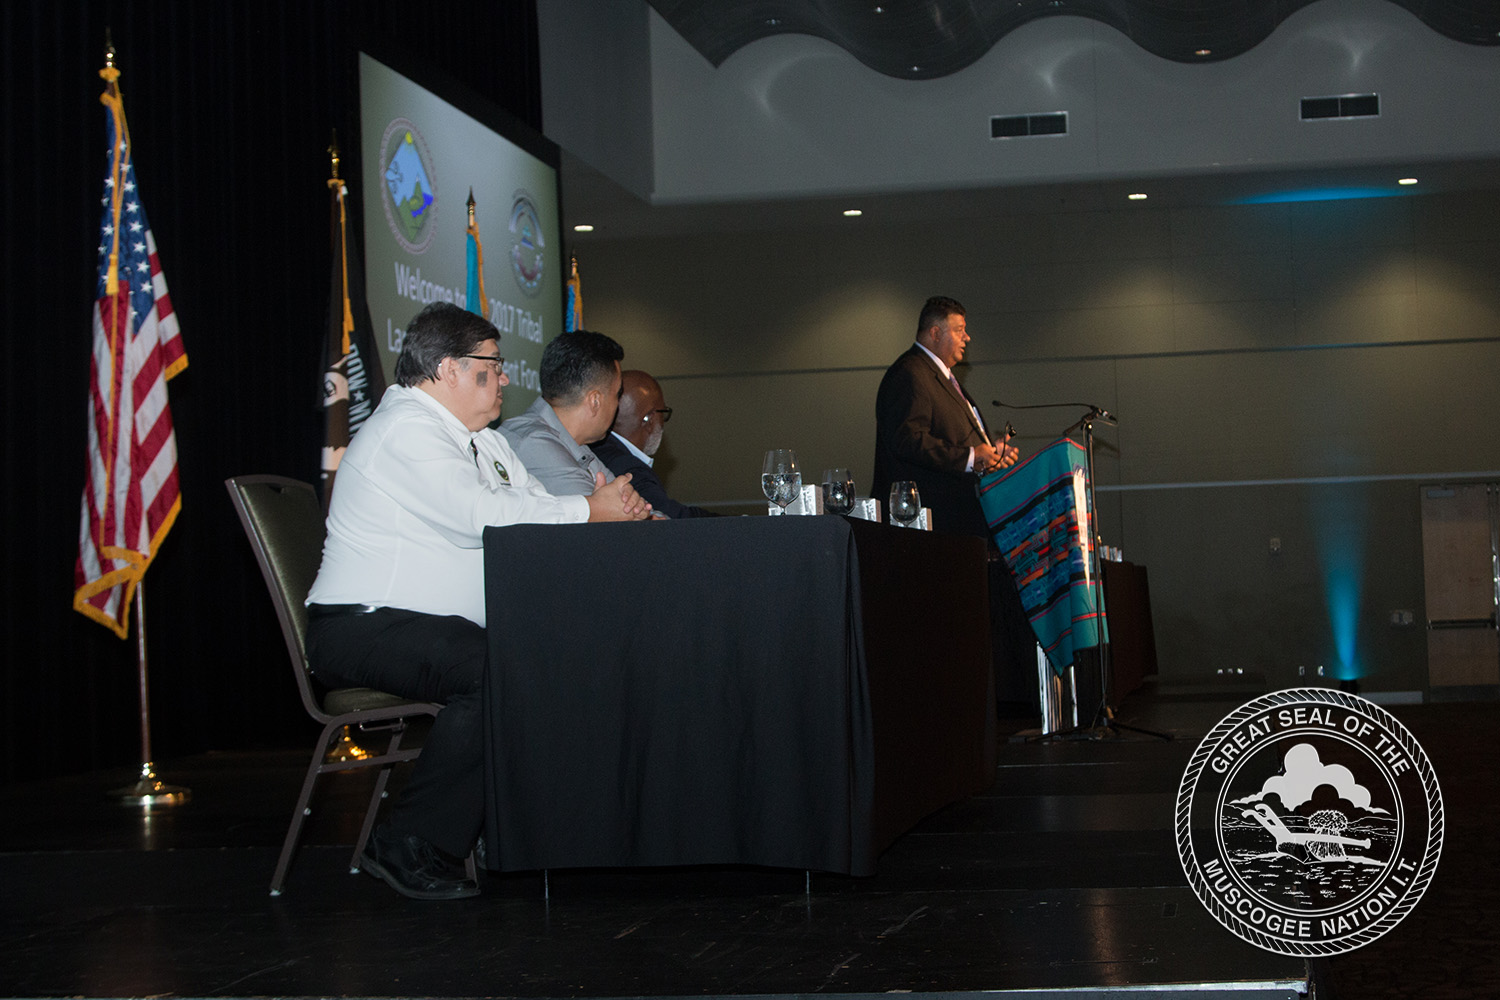 Muscogee (Creek) Nation presents at national environmental convention